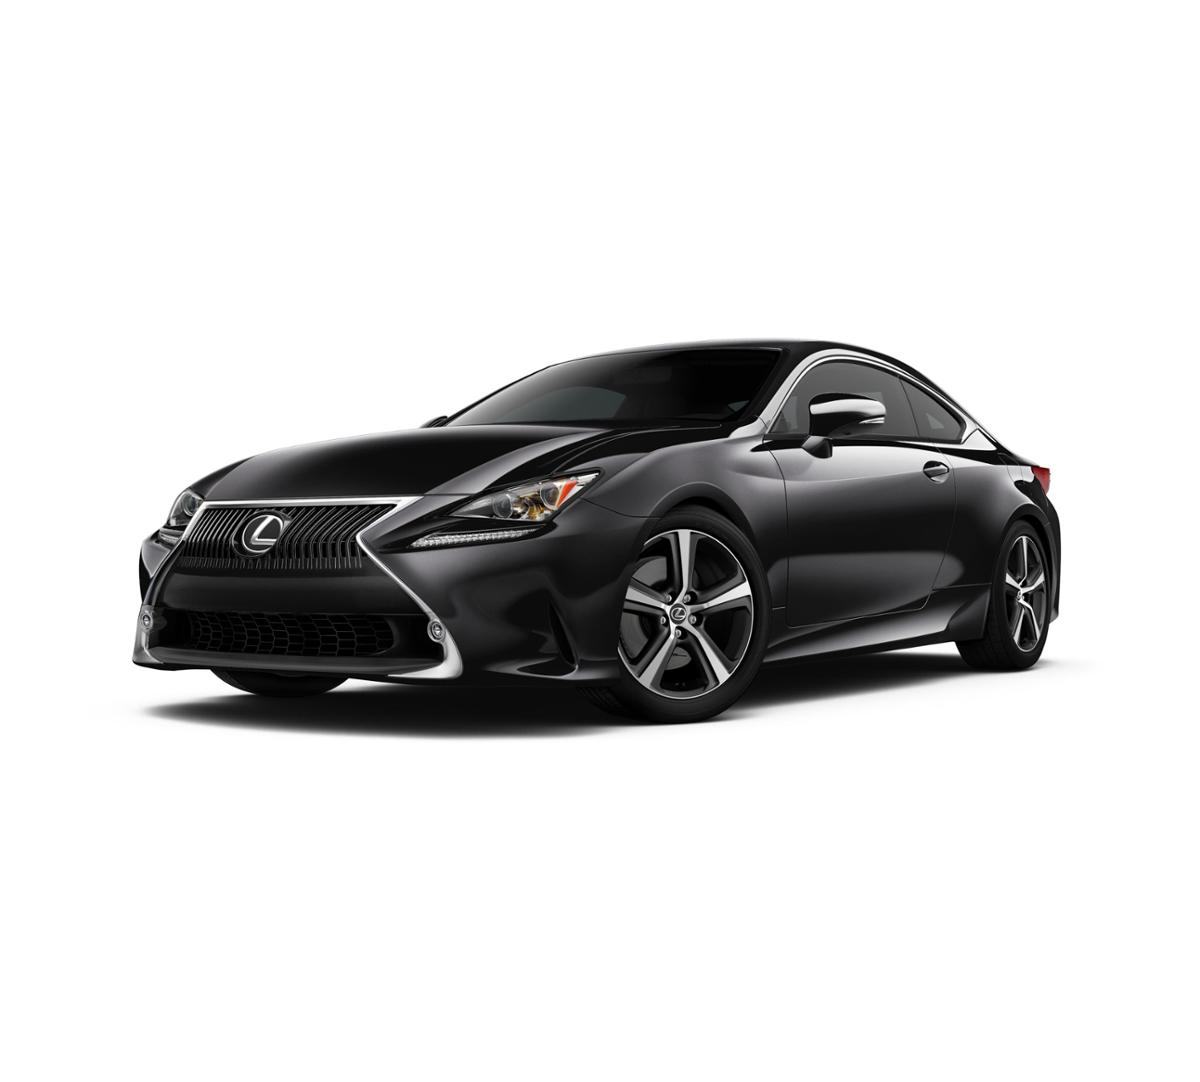 2017 lexus rc 300 for sale in danvers a boston lexus dealer jthsm5bc6h5002575 ira lexus. Black Bedroom Furniture Sets. Home Design Ideas